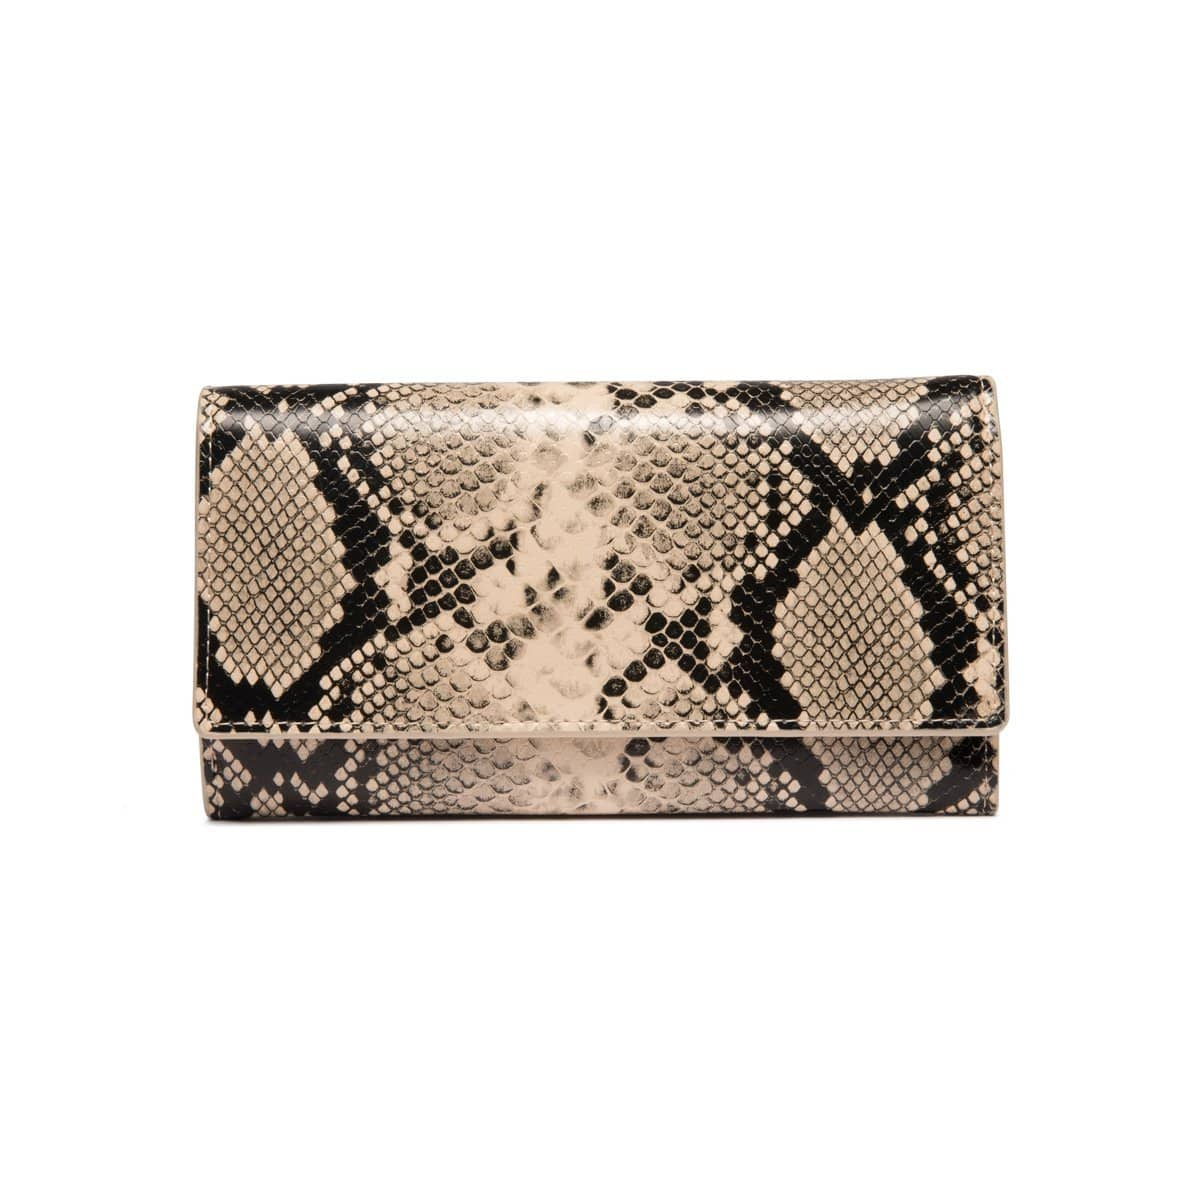 Cream & Black Snakeskin Bella Geldbörse